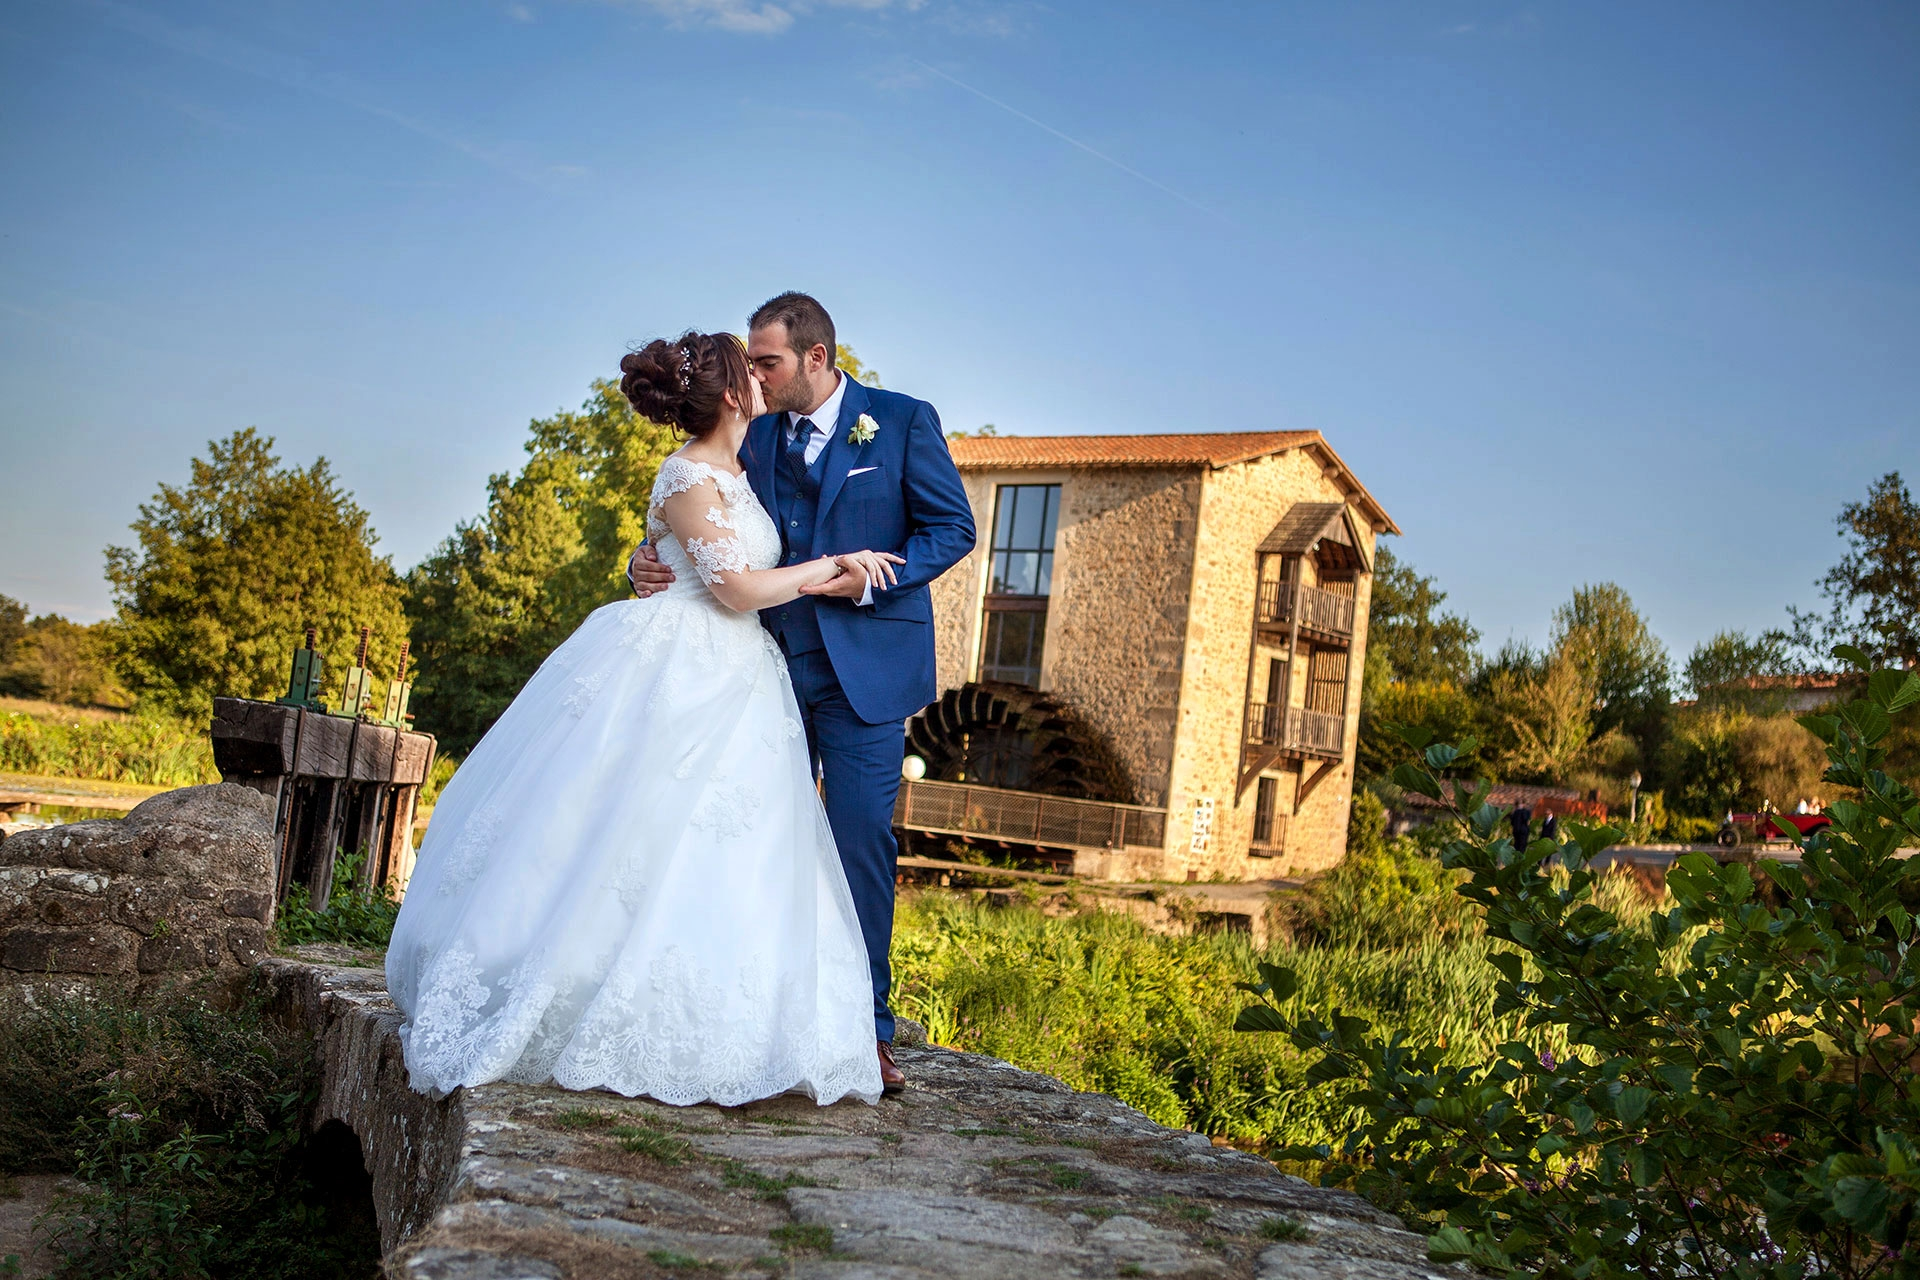 mariage-tiphaine-rudy-37